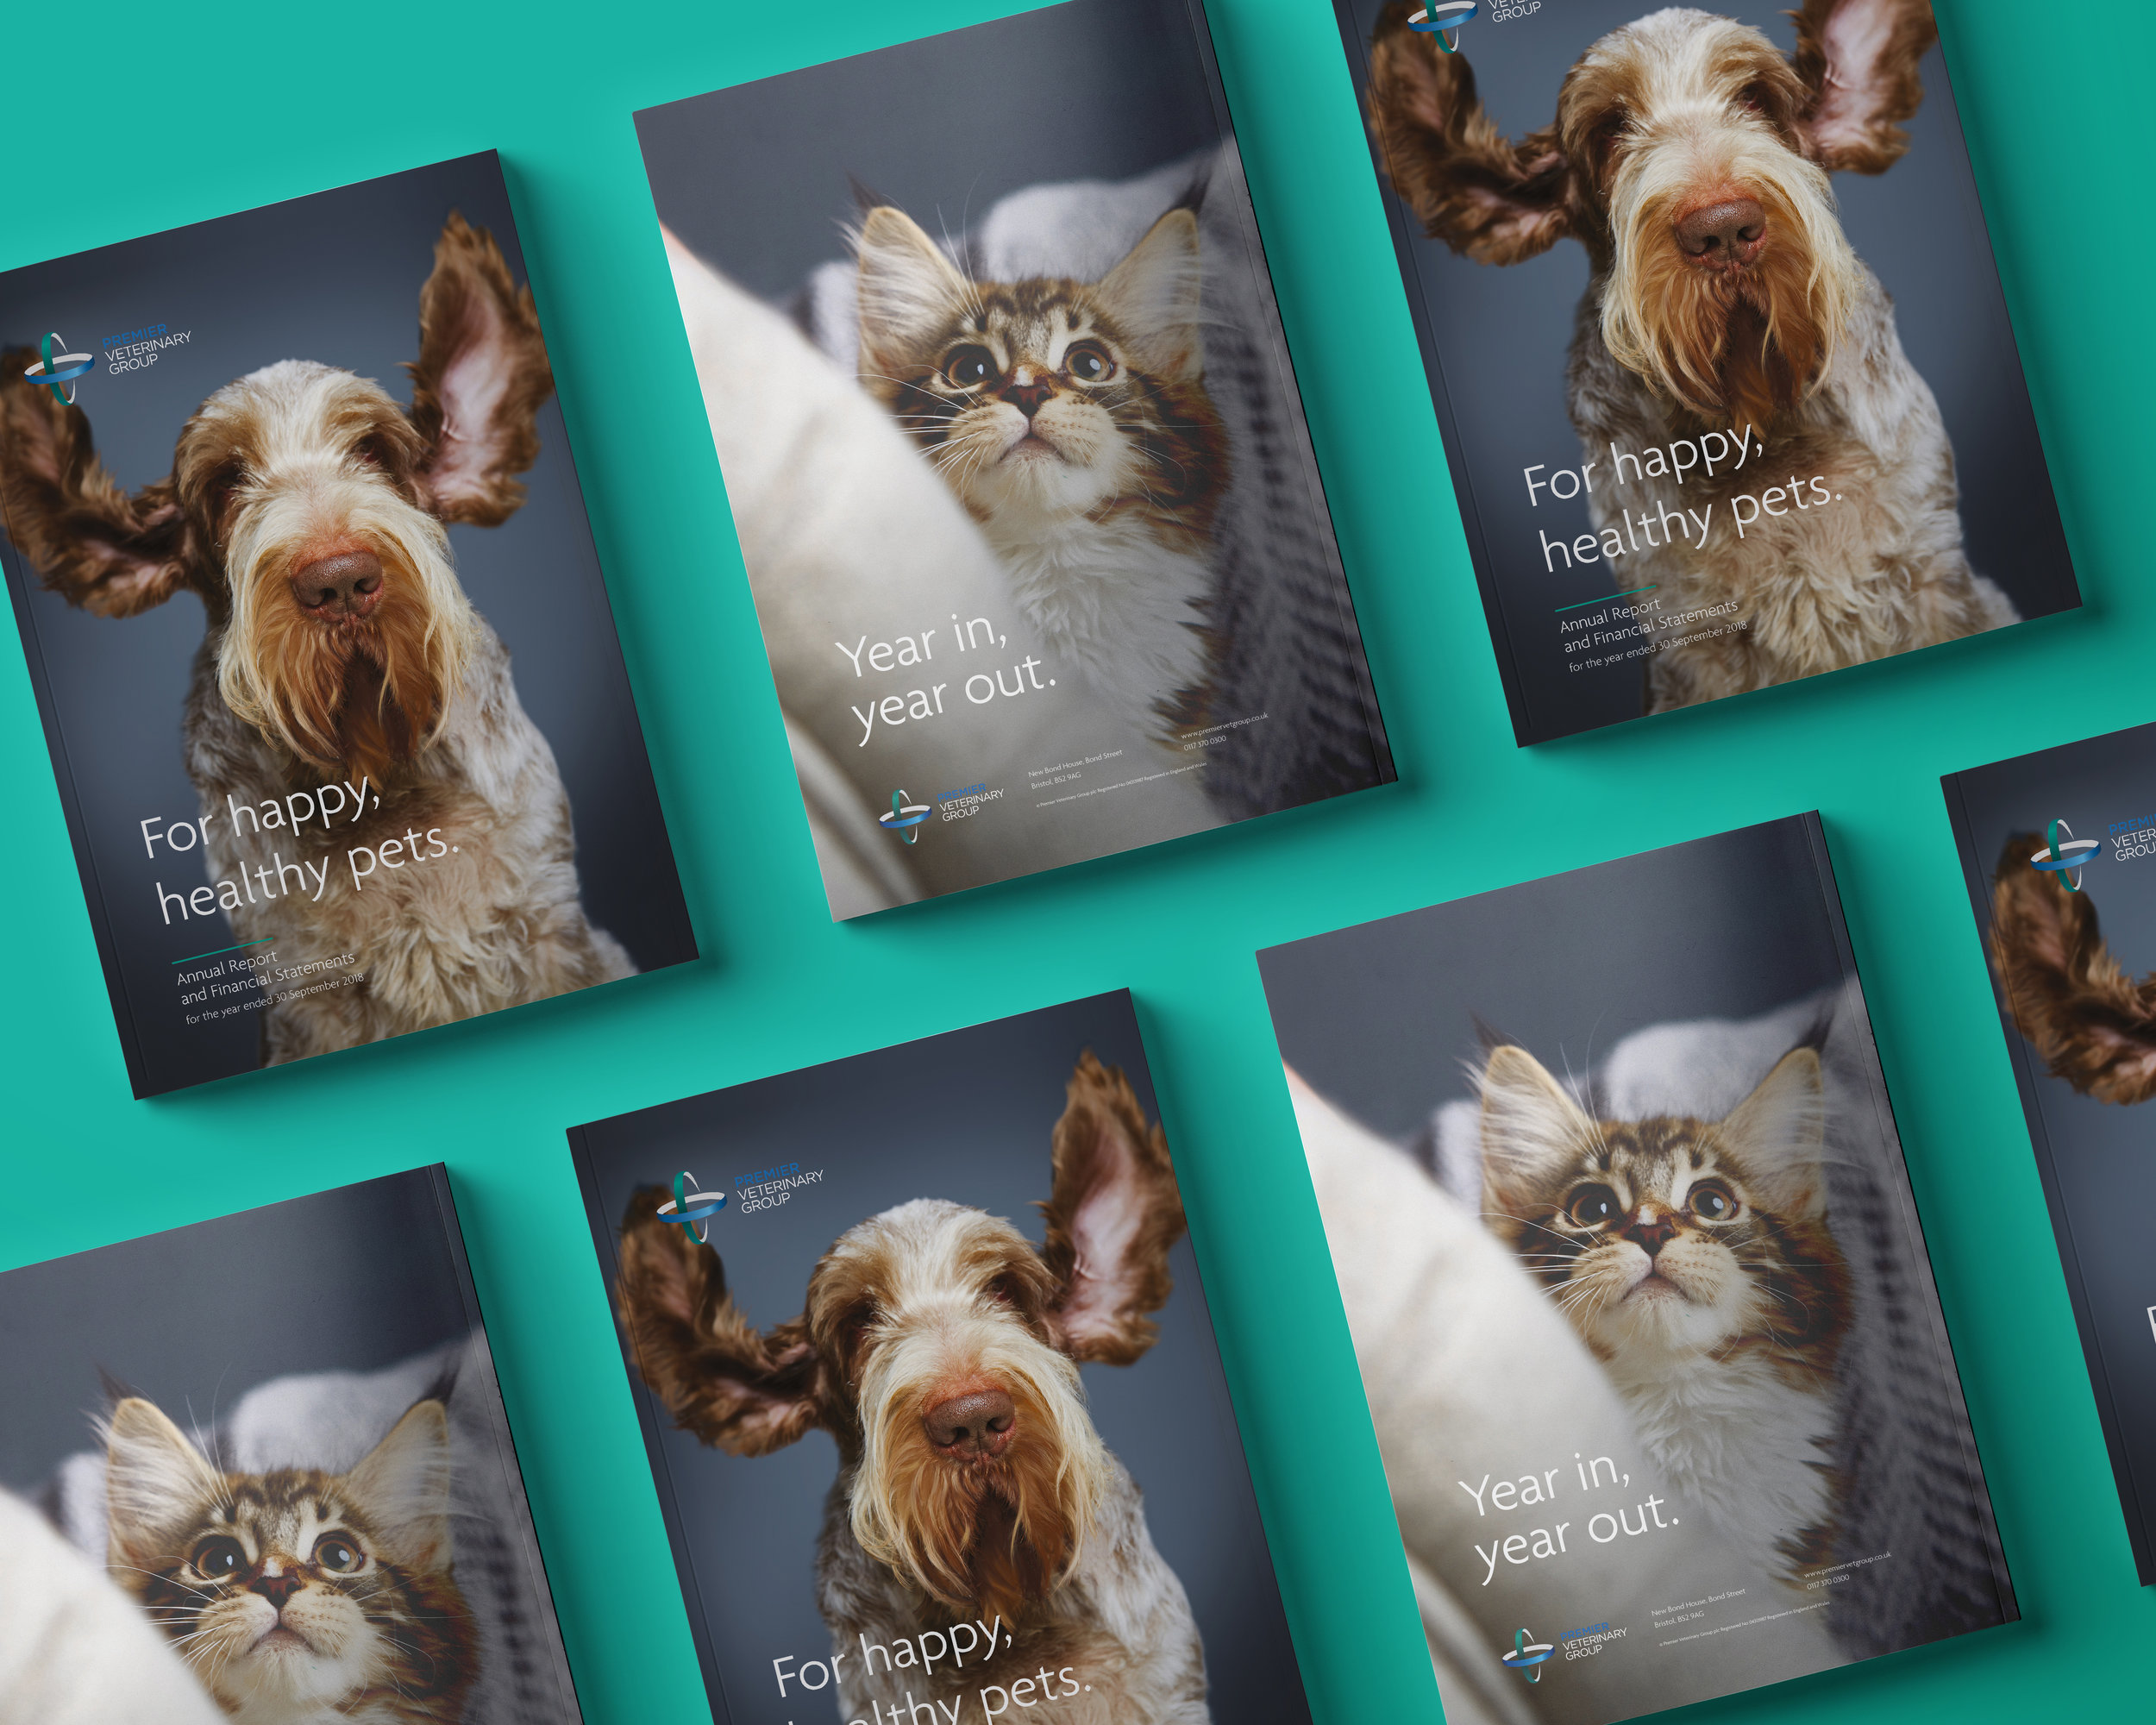 "<strong>Premier Veterinary Group__</strong><p>For happy, healthy pets<br><a href=""/pvg"">View case study →</a></p>"